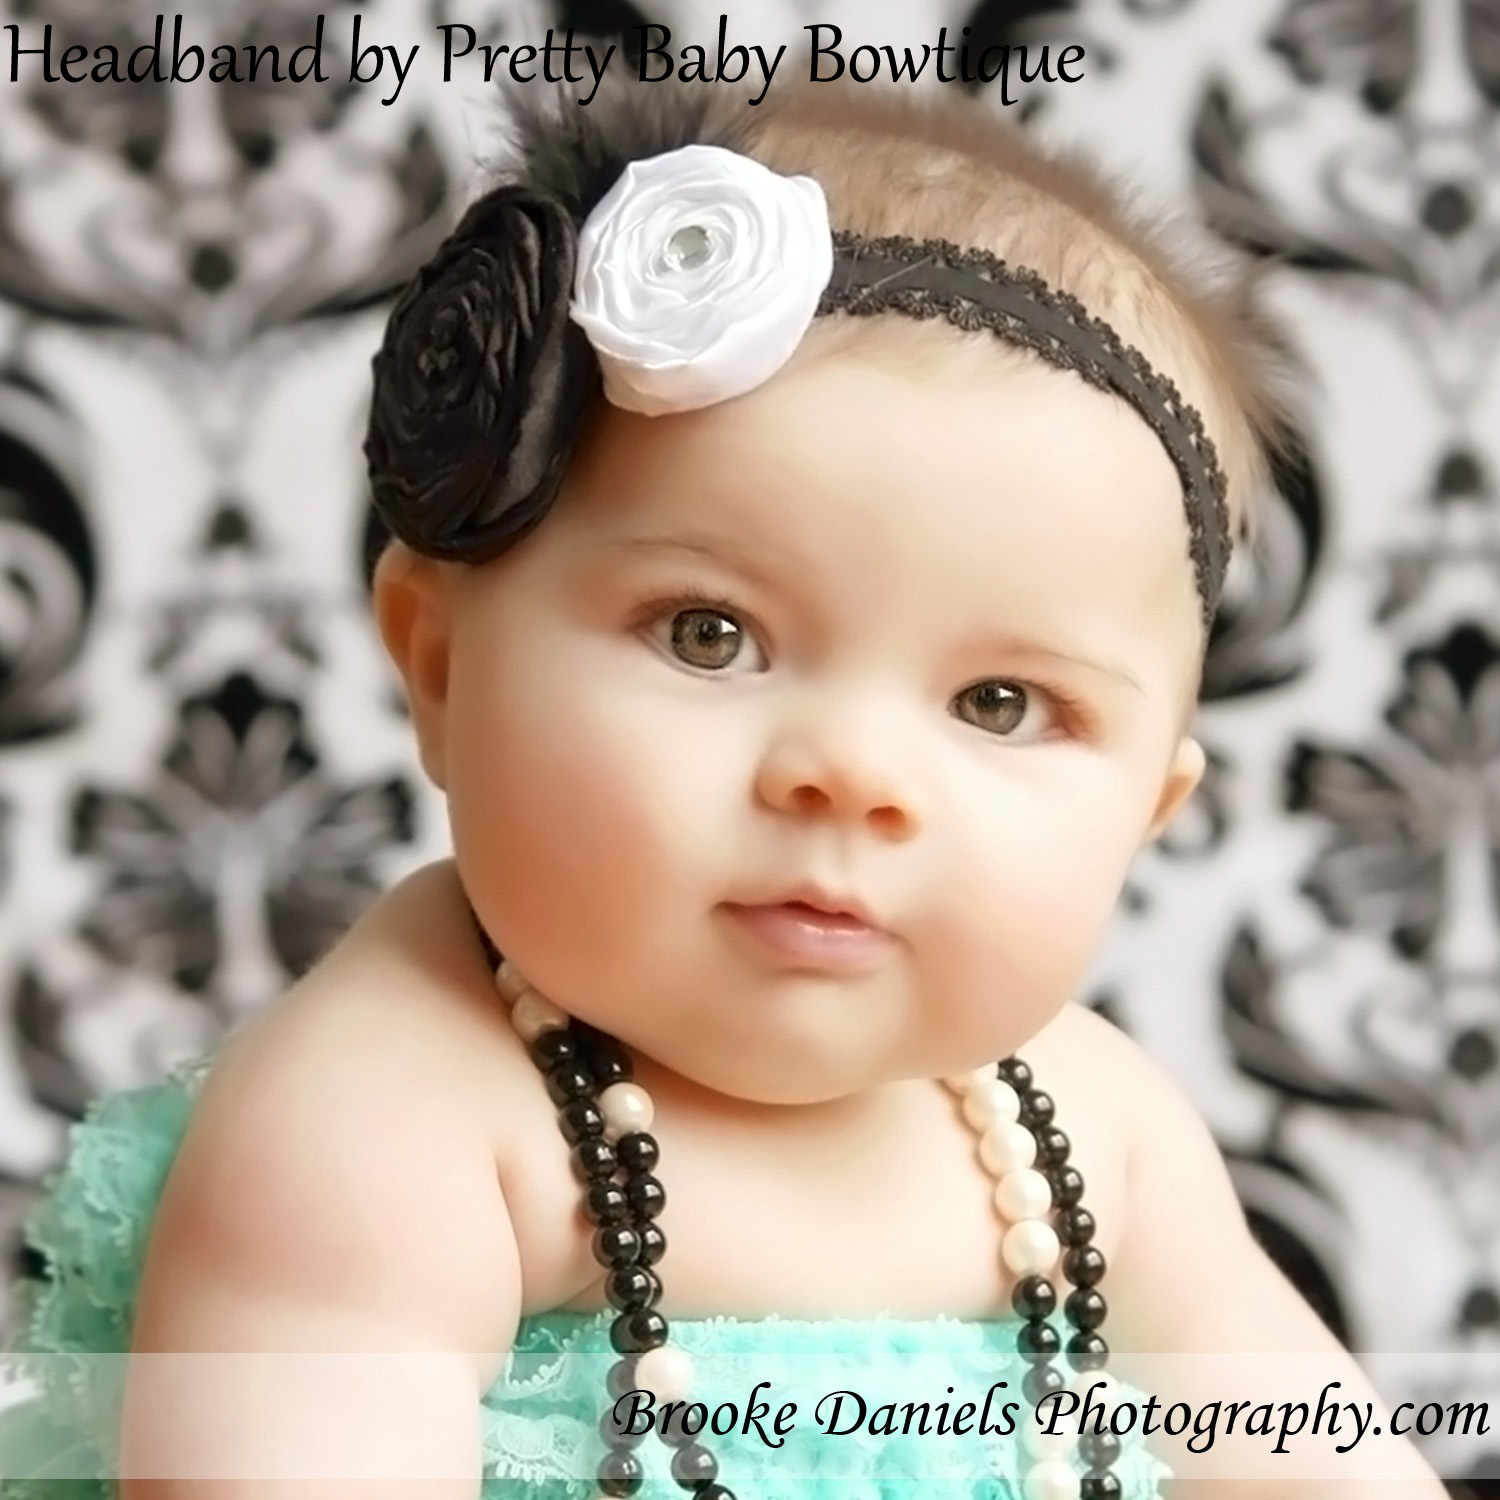 Etsy Retailer Profile:  The Pretty Baby Bowtique